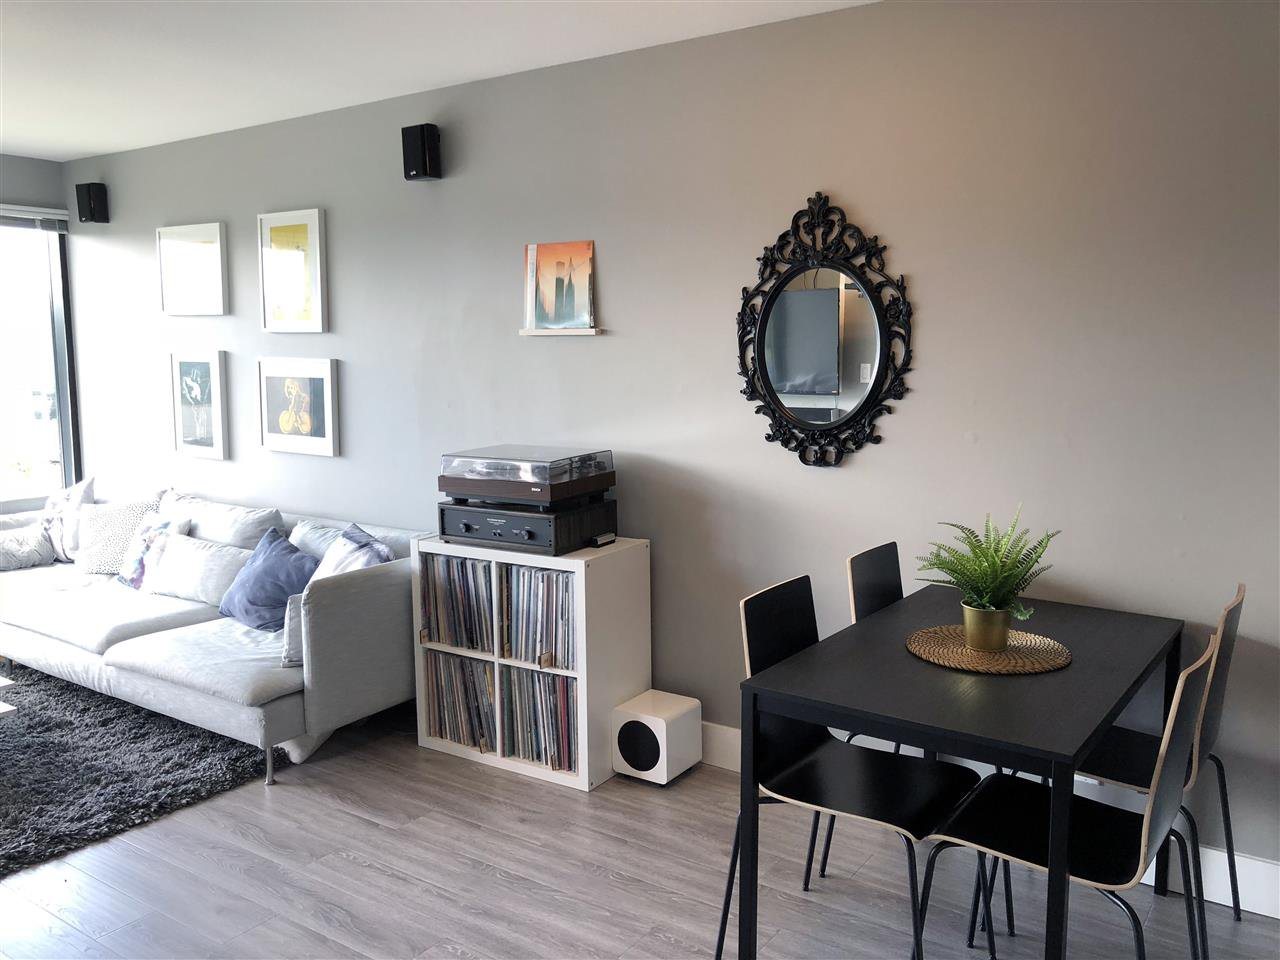 Photo 4: Photos: 404 2525 BLENHEIM Street in Vancouver: Kitsilano Condo for sale (Vancouver West)  : MLS®# R2278188